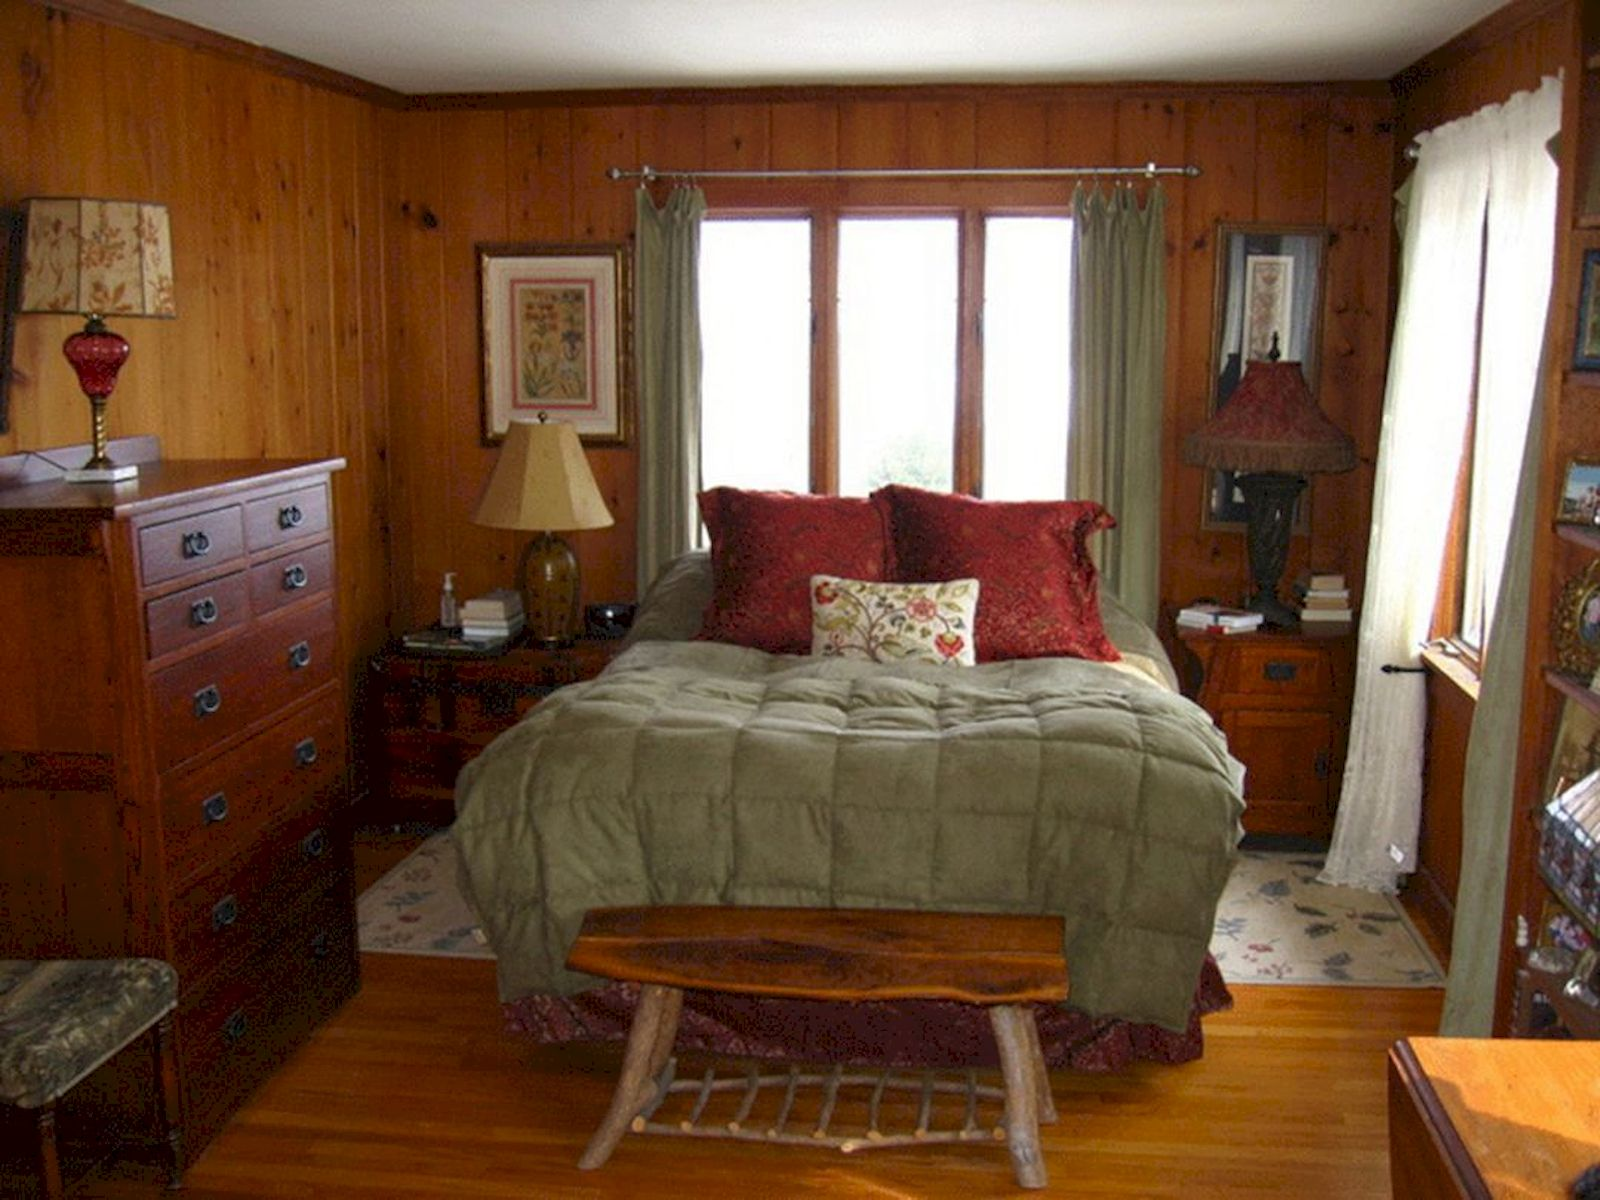 Awesome Small Bedroom Decorating Ideas On A Budget (7)